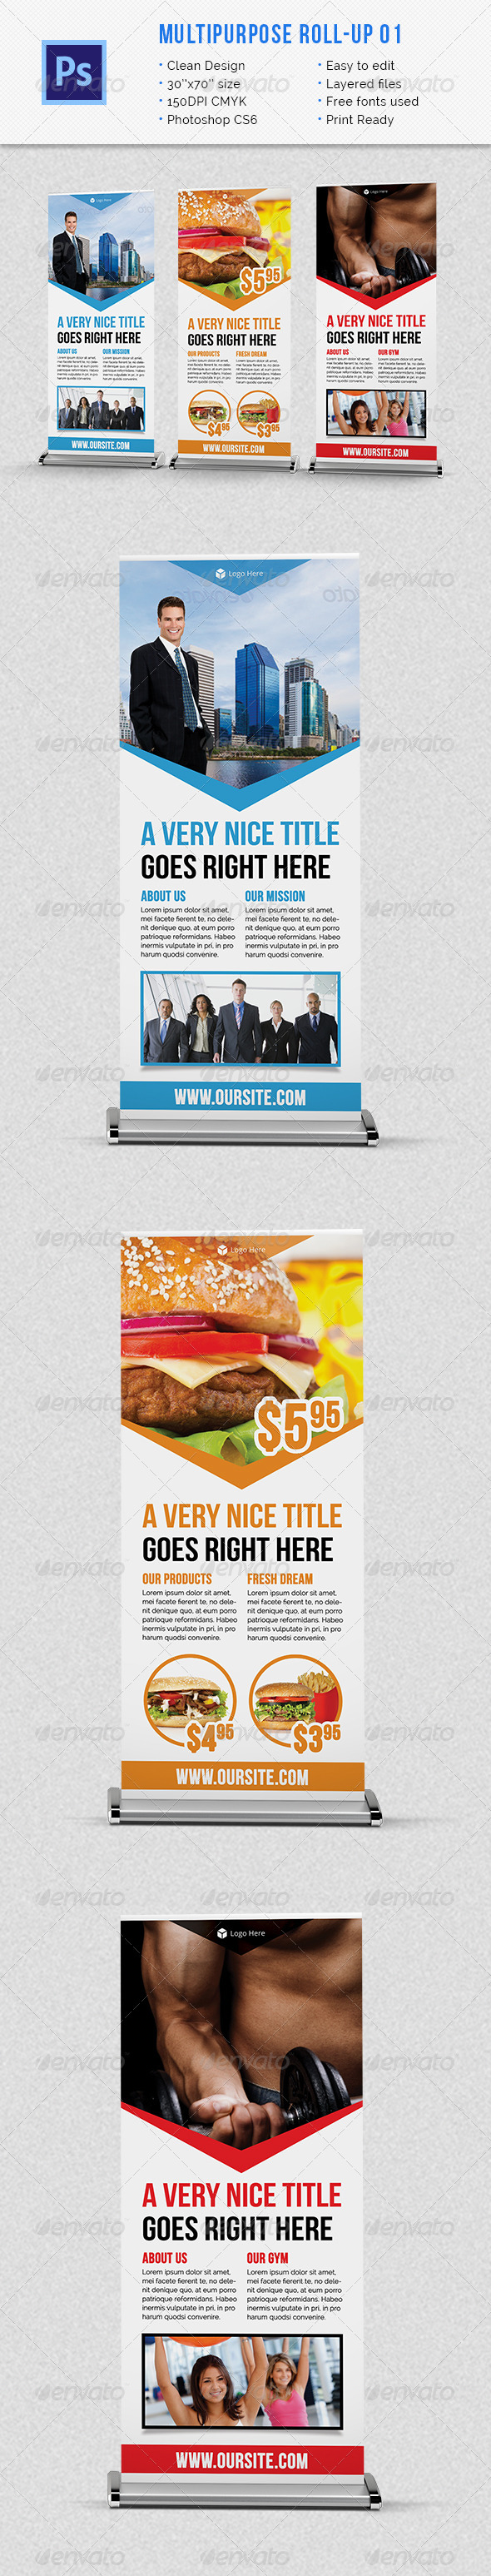 GraphicRiver Multipurpose Roll-up 01 6559499